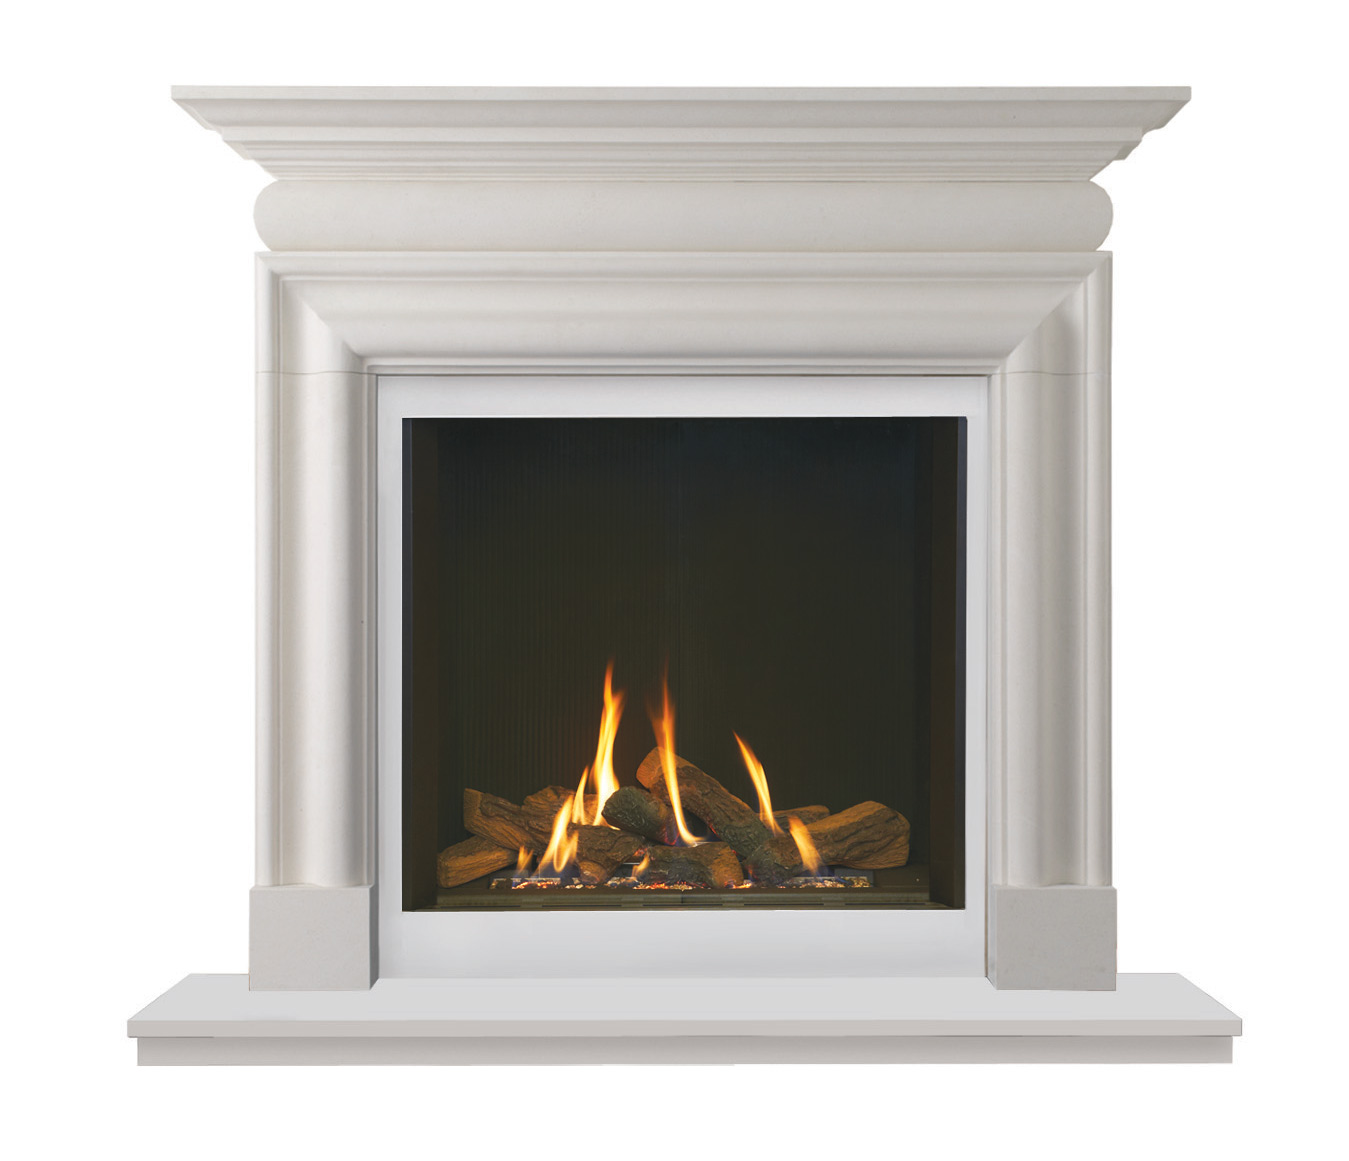 freestanding, granite hearth, slate hearth, woodburning, multifuel, Bangor, Newtownards, Belfast, Holywood, Conlig, Stove yard, Fireplaces, flue pipe, hearths, room heater, wilsons, Portaferry, Kircubbin, Greyabbey, riven slate, wooden beans, fireplace beams, fire chambers, open fires, logs, coal, grates, stove glass, grate bars, ards fireplaces, Jubilee Road, Helensbay, Crawfordsburn, flexi flue, chimney cowls, down draught cowls, gas, natural gas, reflex 75T, log effect fire